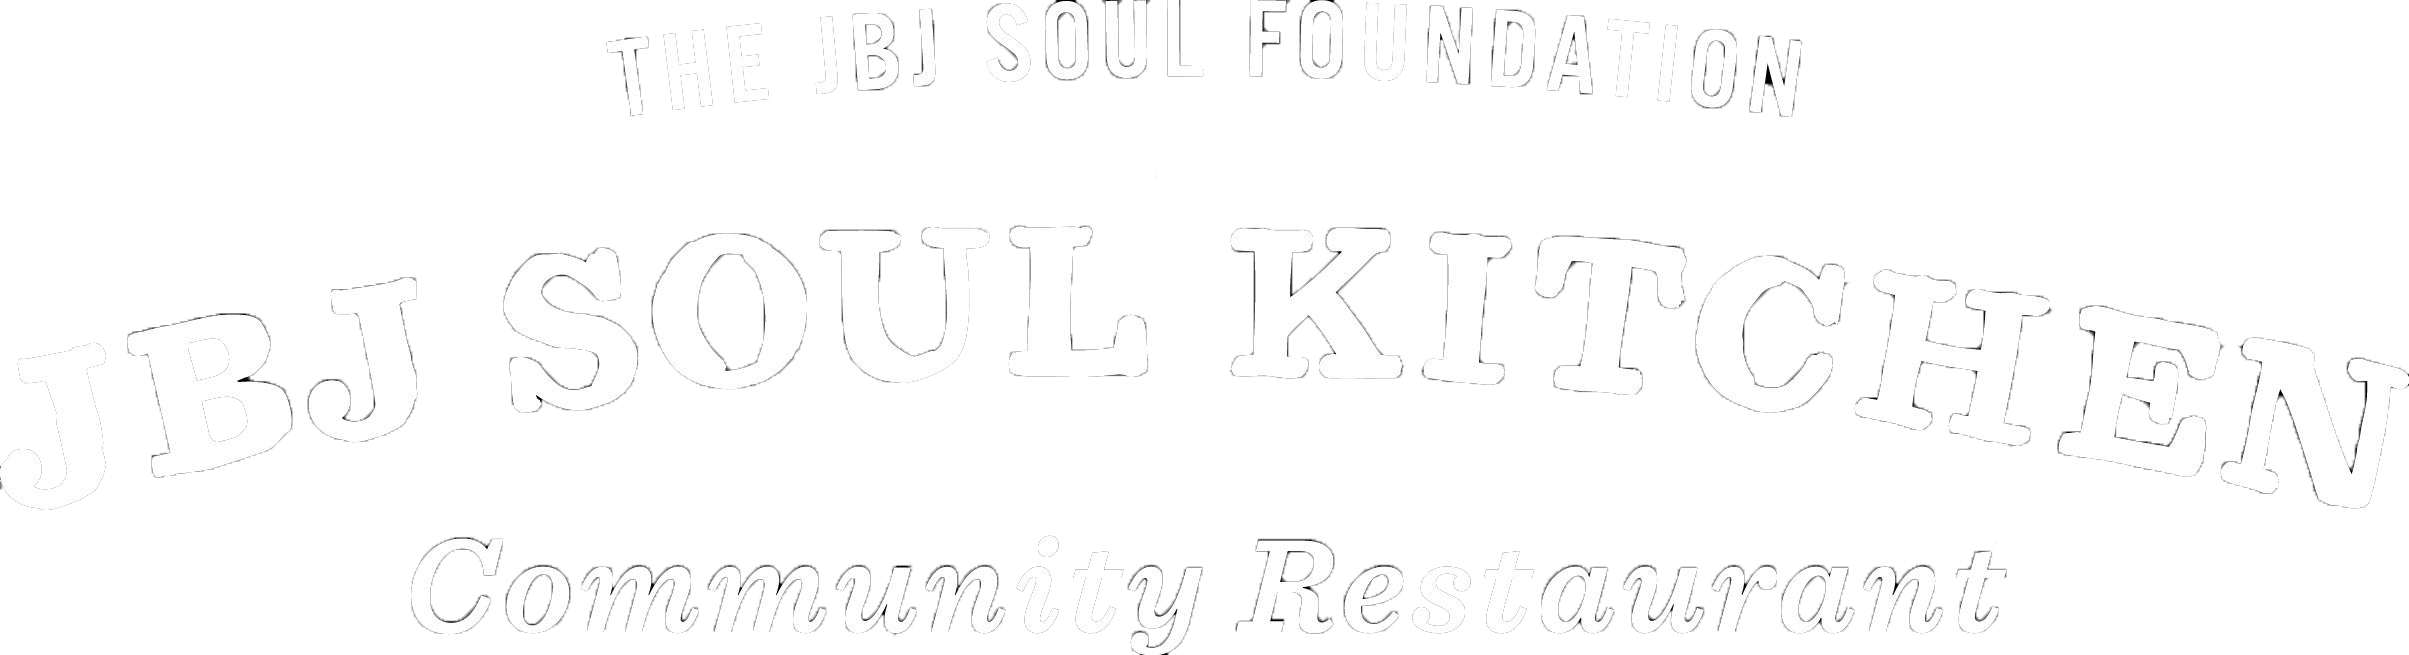 JBJ Soul Kitchen